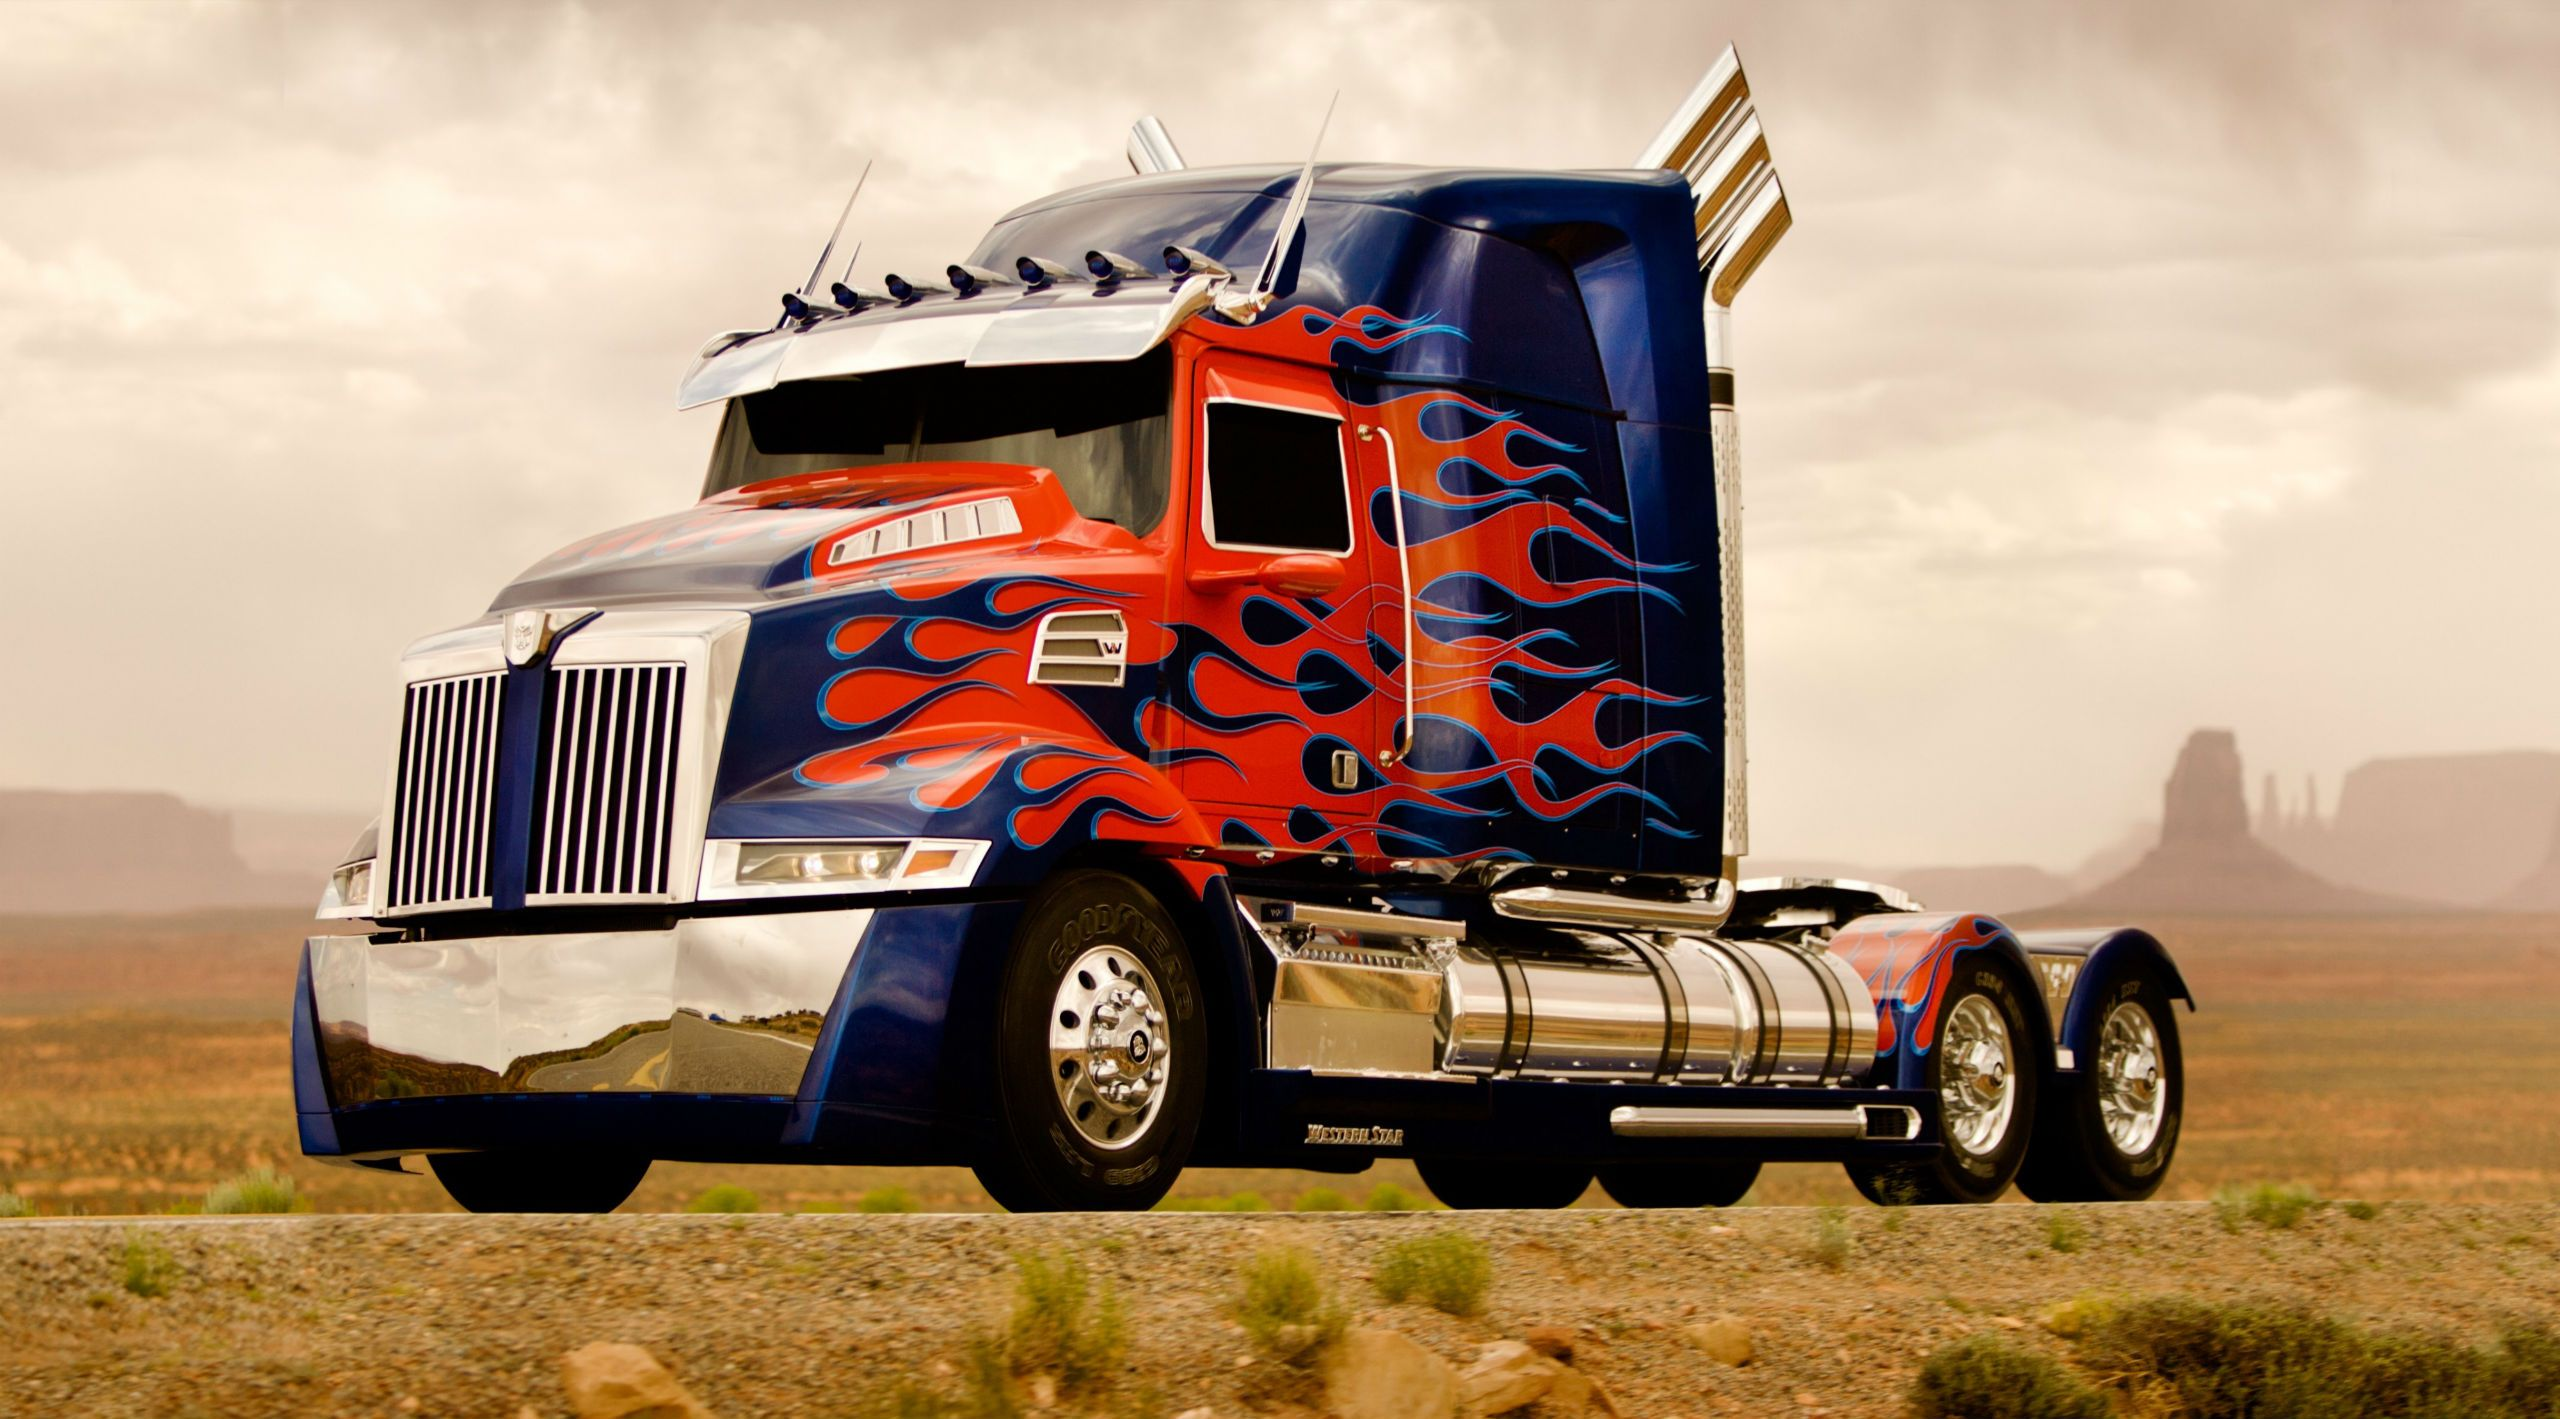 semi trucks wallpaper  Semi Truck Wallpapers HD | wallpaper.wiki